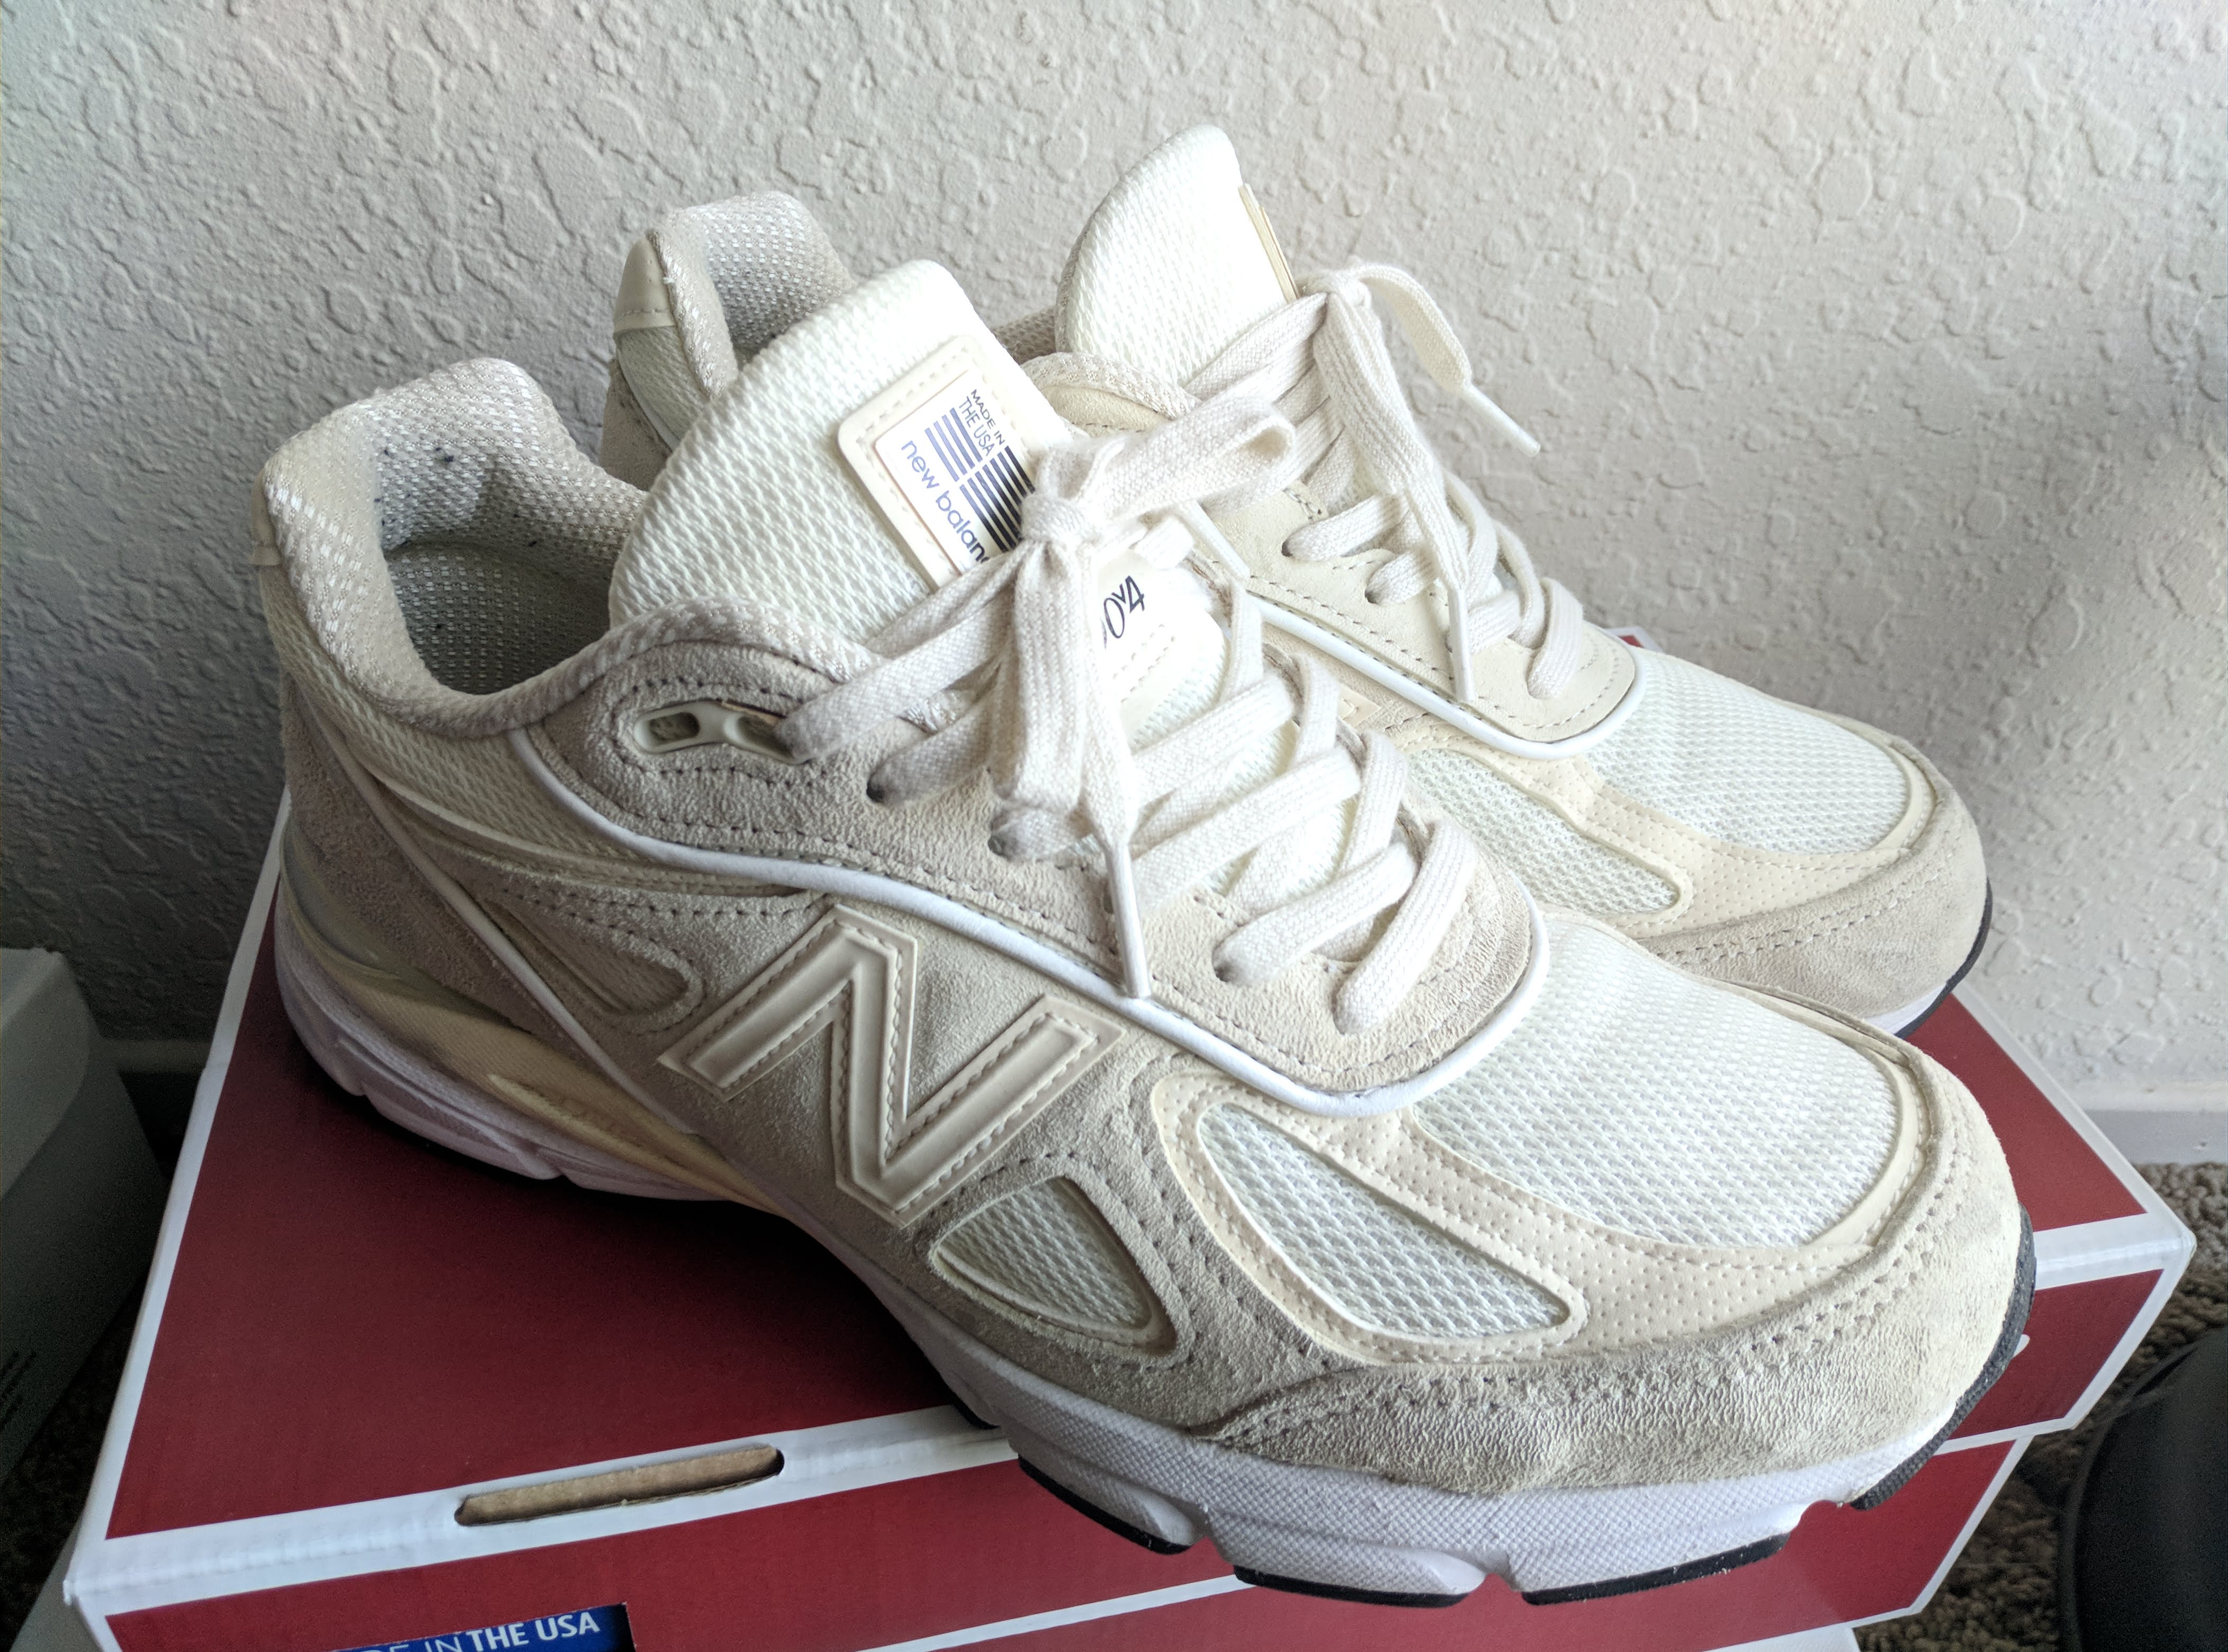 huge selection of 060d8 abf90 New Balance × Stussy ×. Stussy x NB 990v4 - Cream